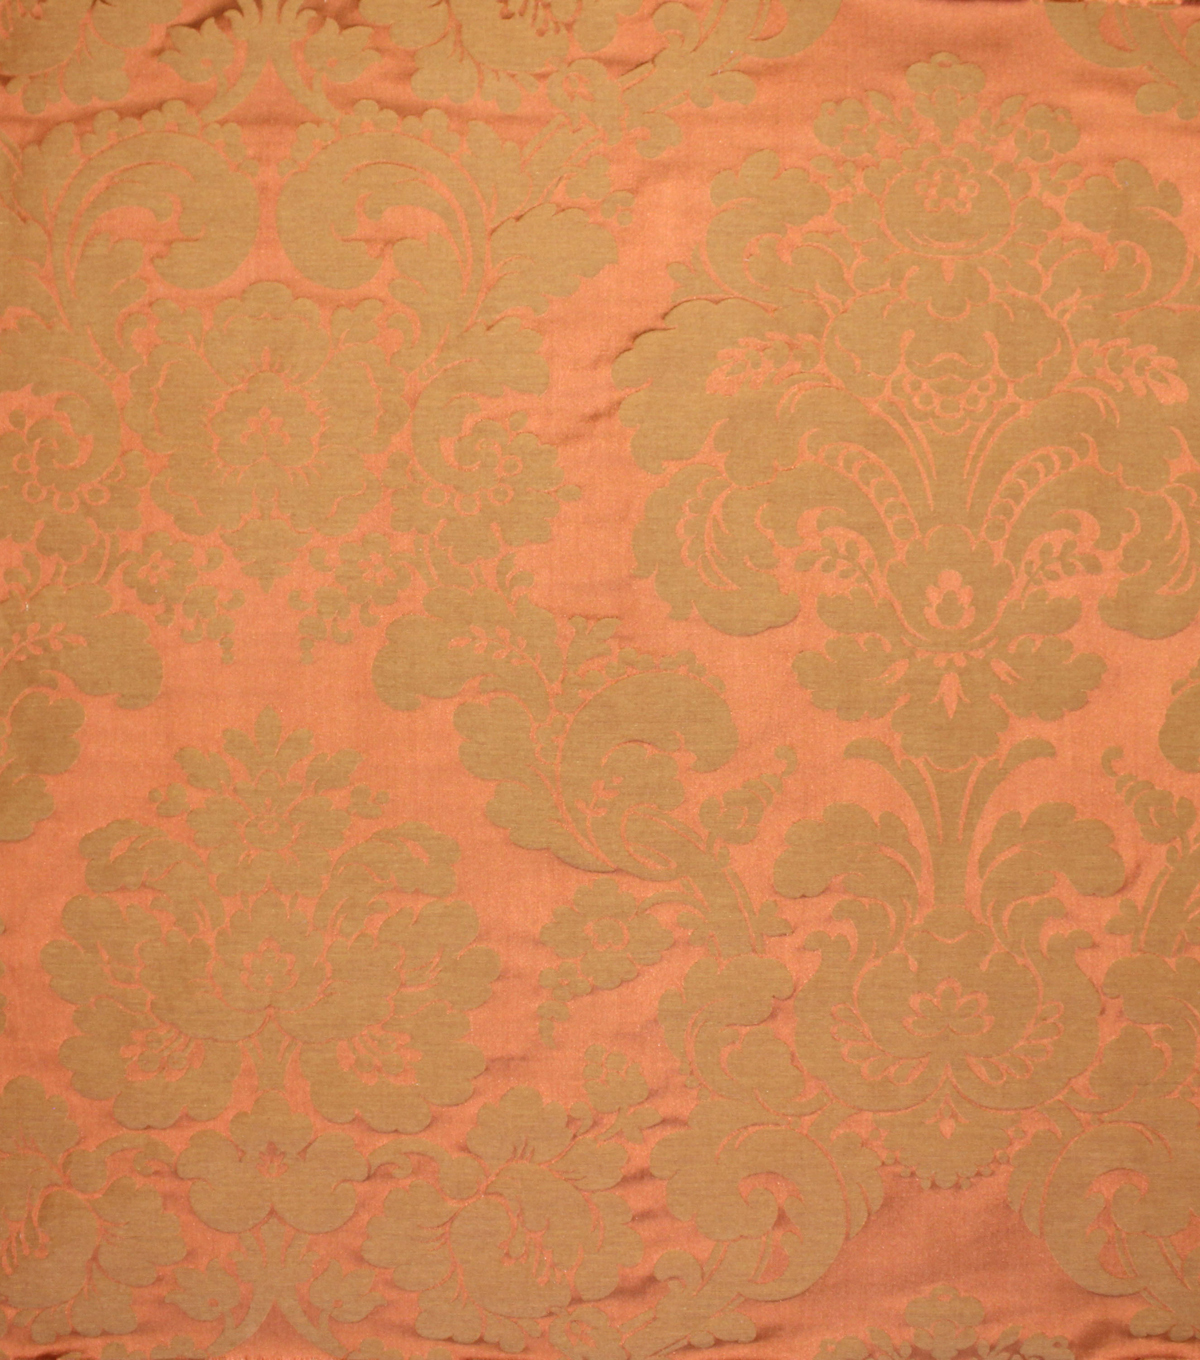 Home Decor 8\u0022x8\u0022 Fabric Swatch-Upholstery Fabric Barrow M7391-5280 Sienna